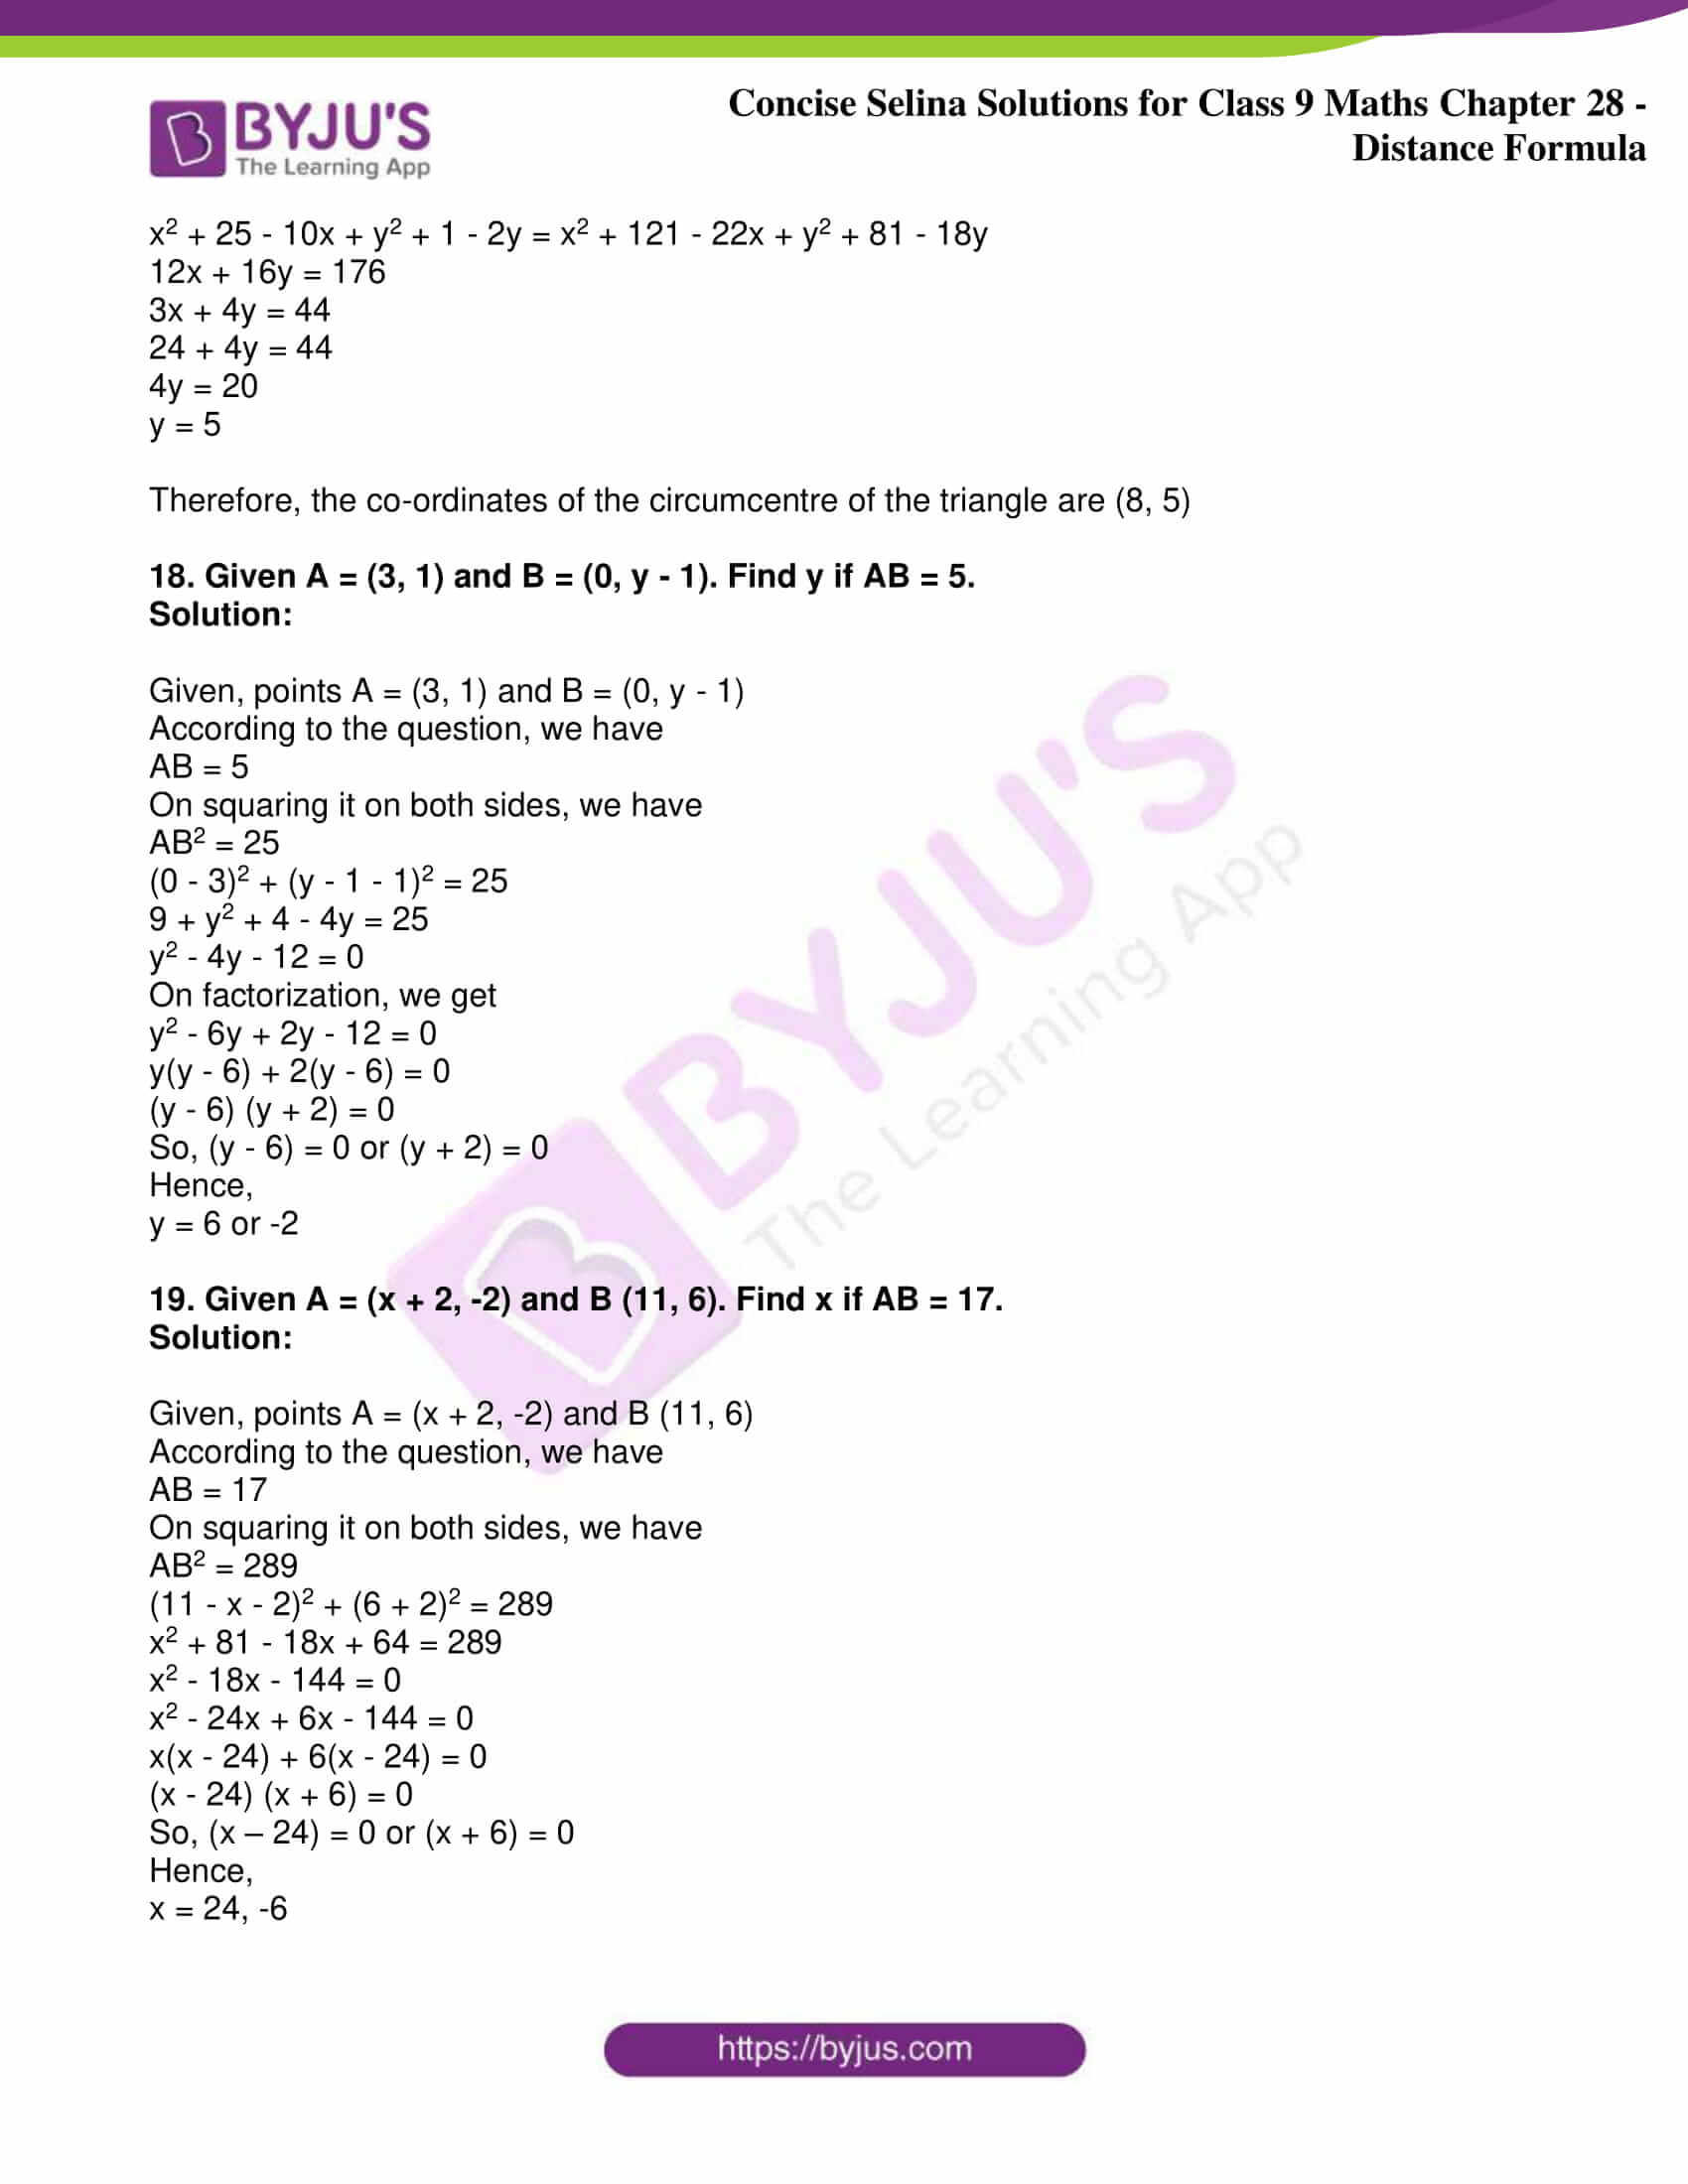 icse class 9 maths may10 selina solutions chapter 28 distance formula 09